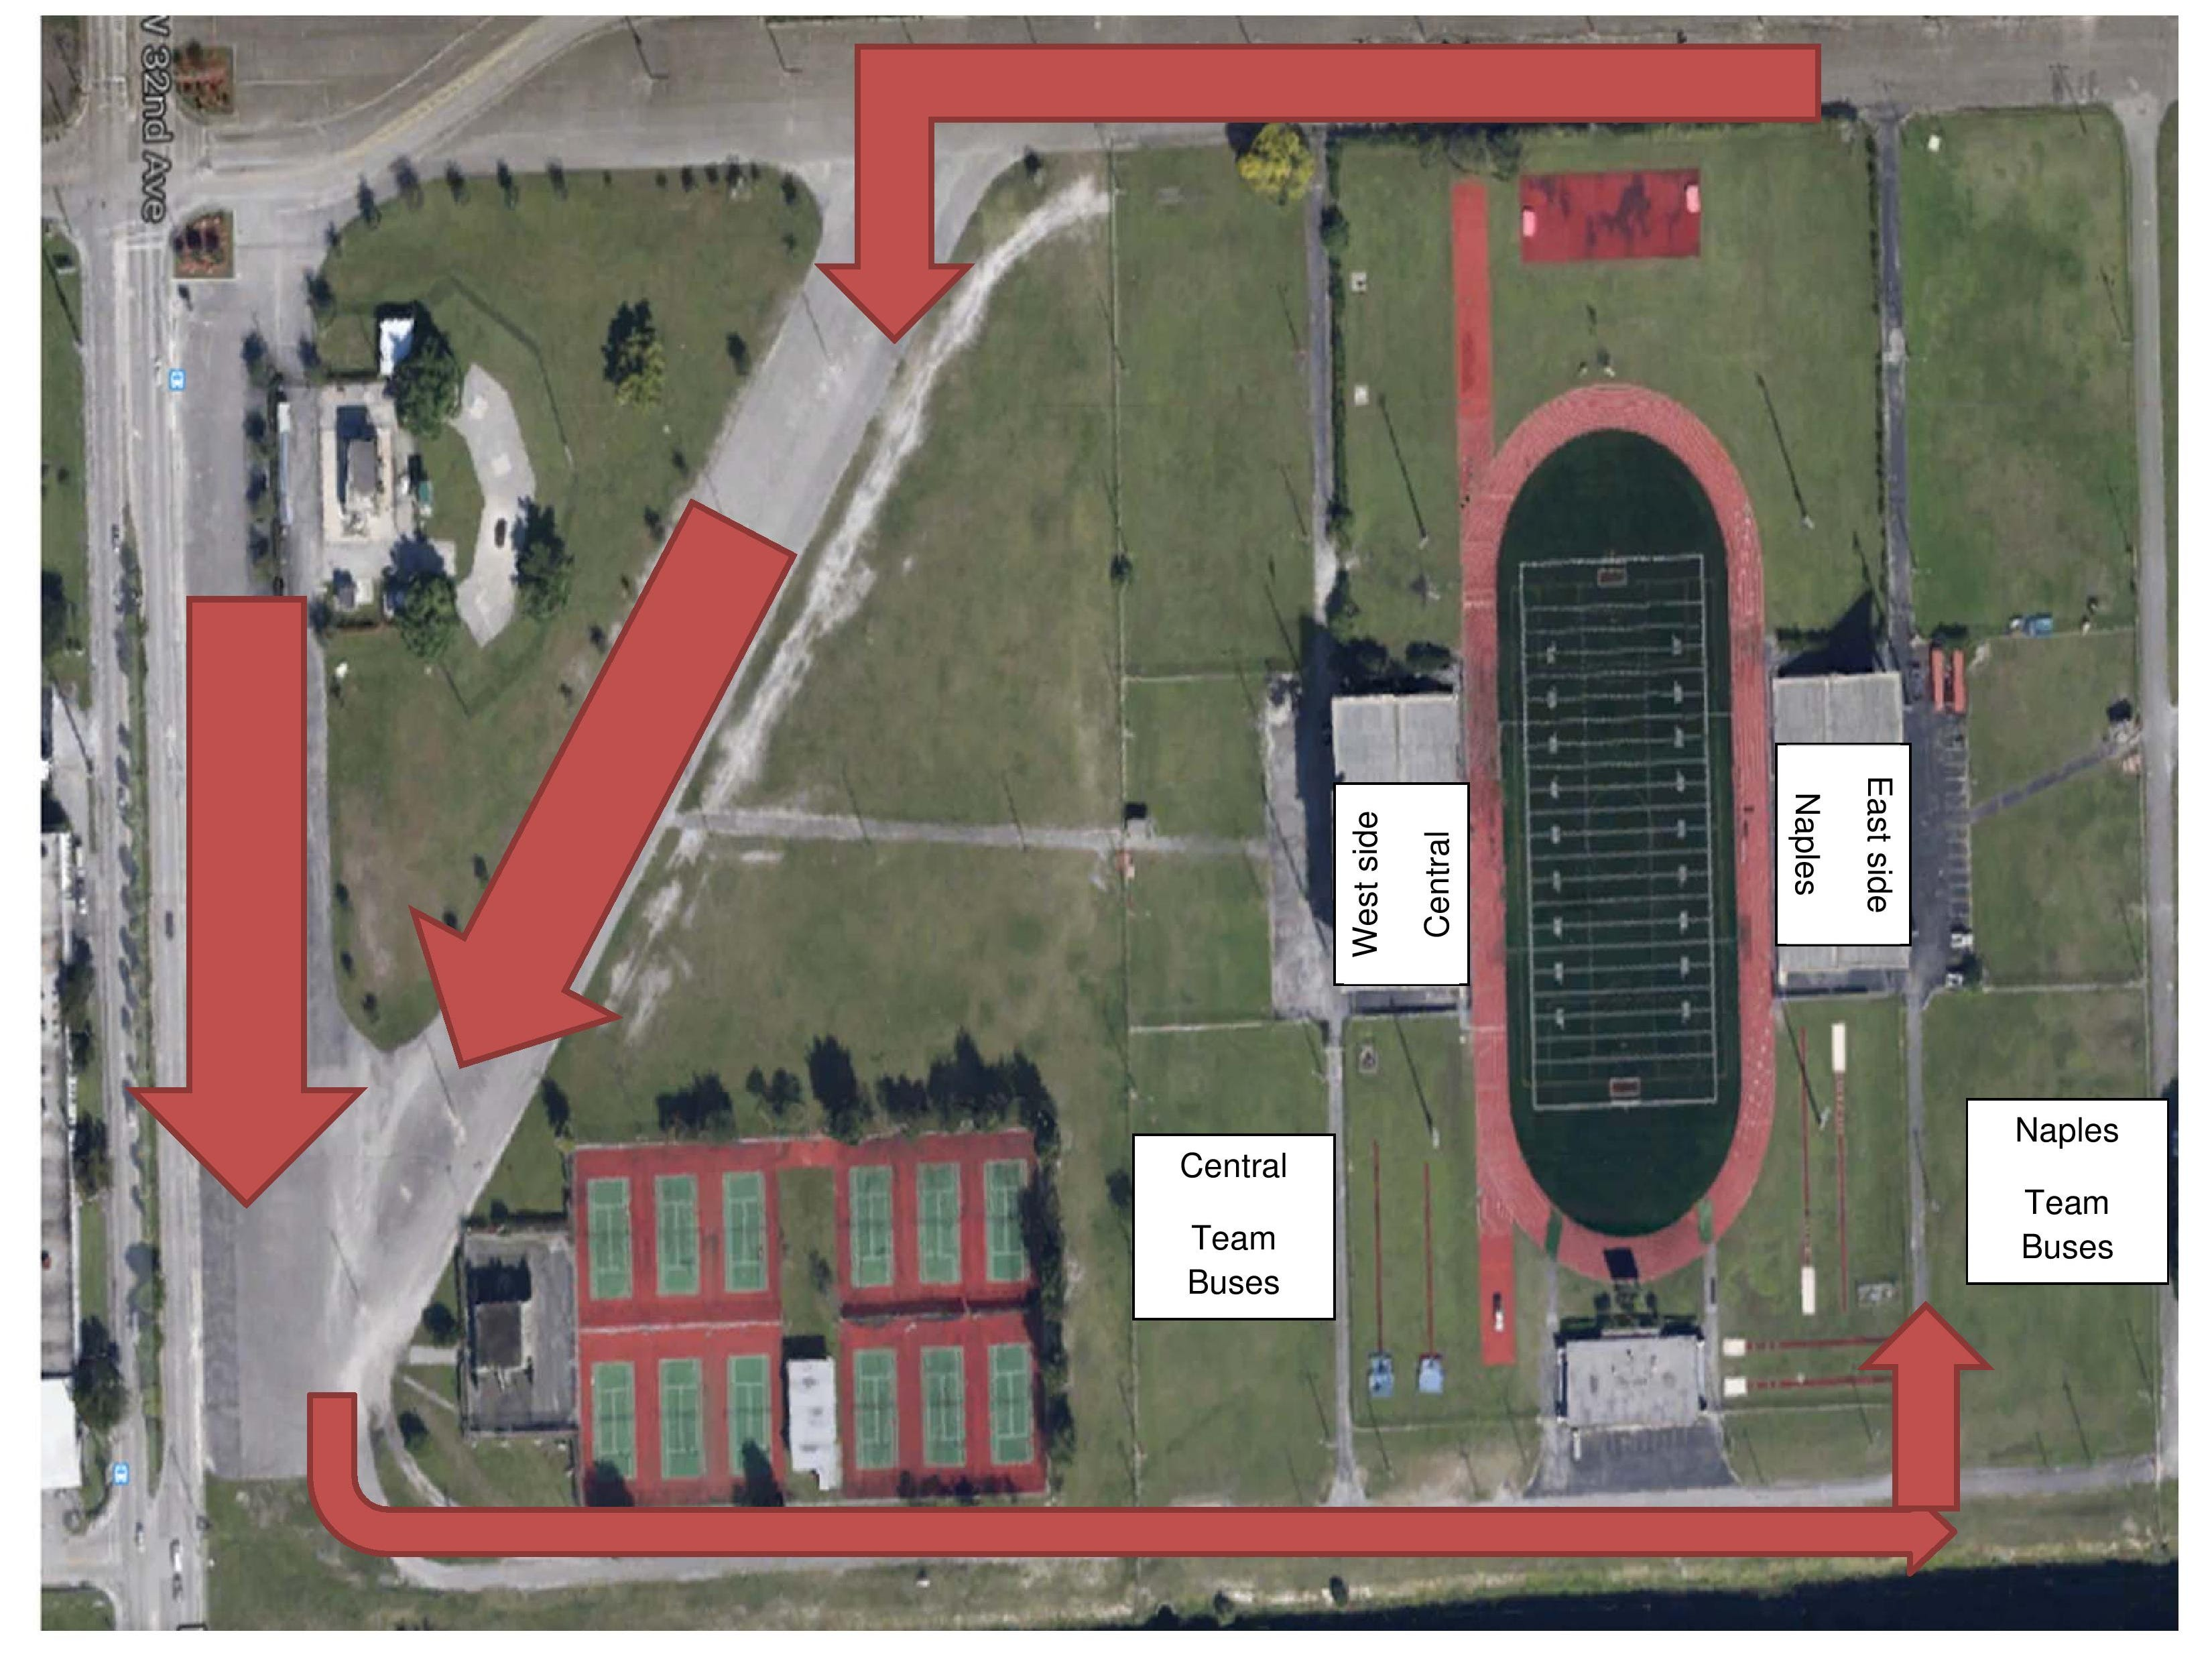 Naples will play Miami Central Friday in the Class 6A semifinals at Traz Powell Stadium. Naples fans should park and enter on the east side of the stadium.